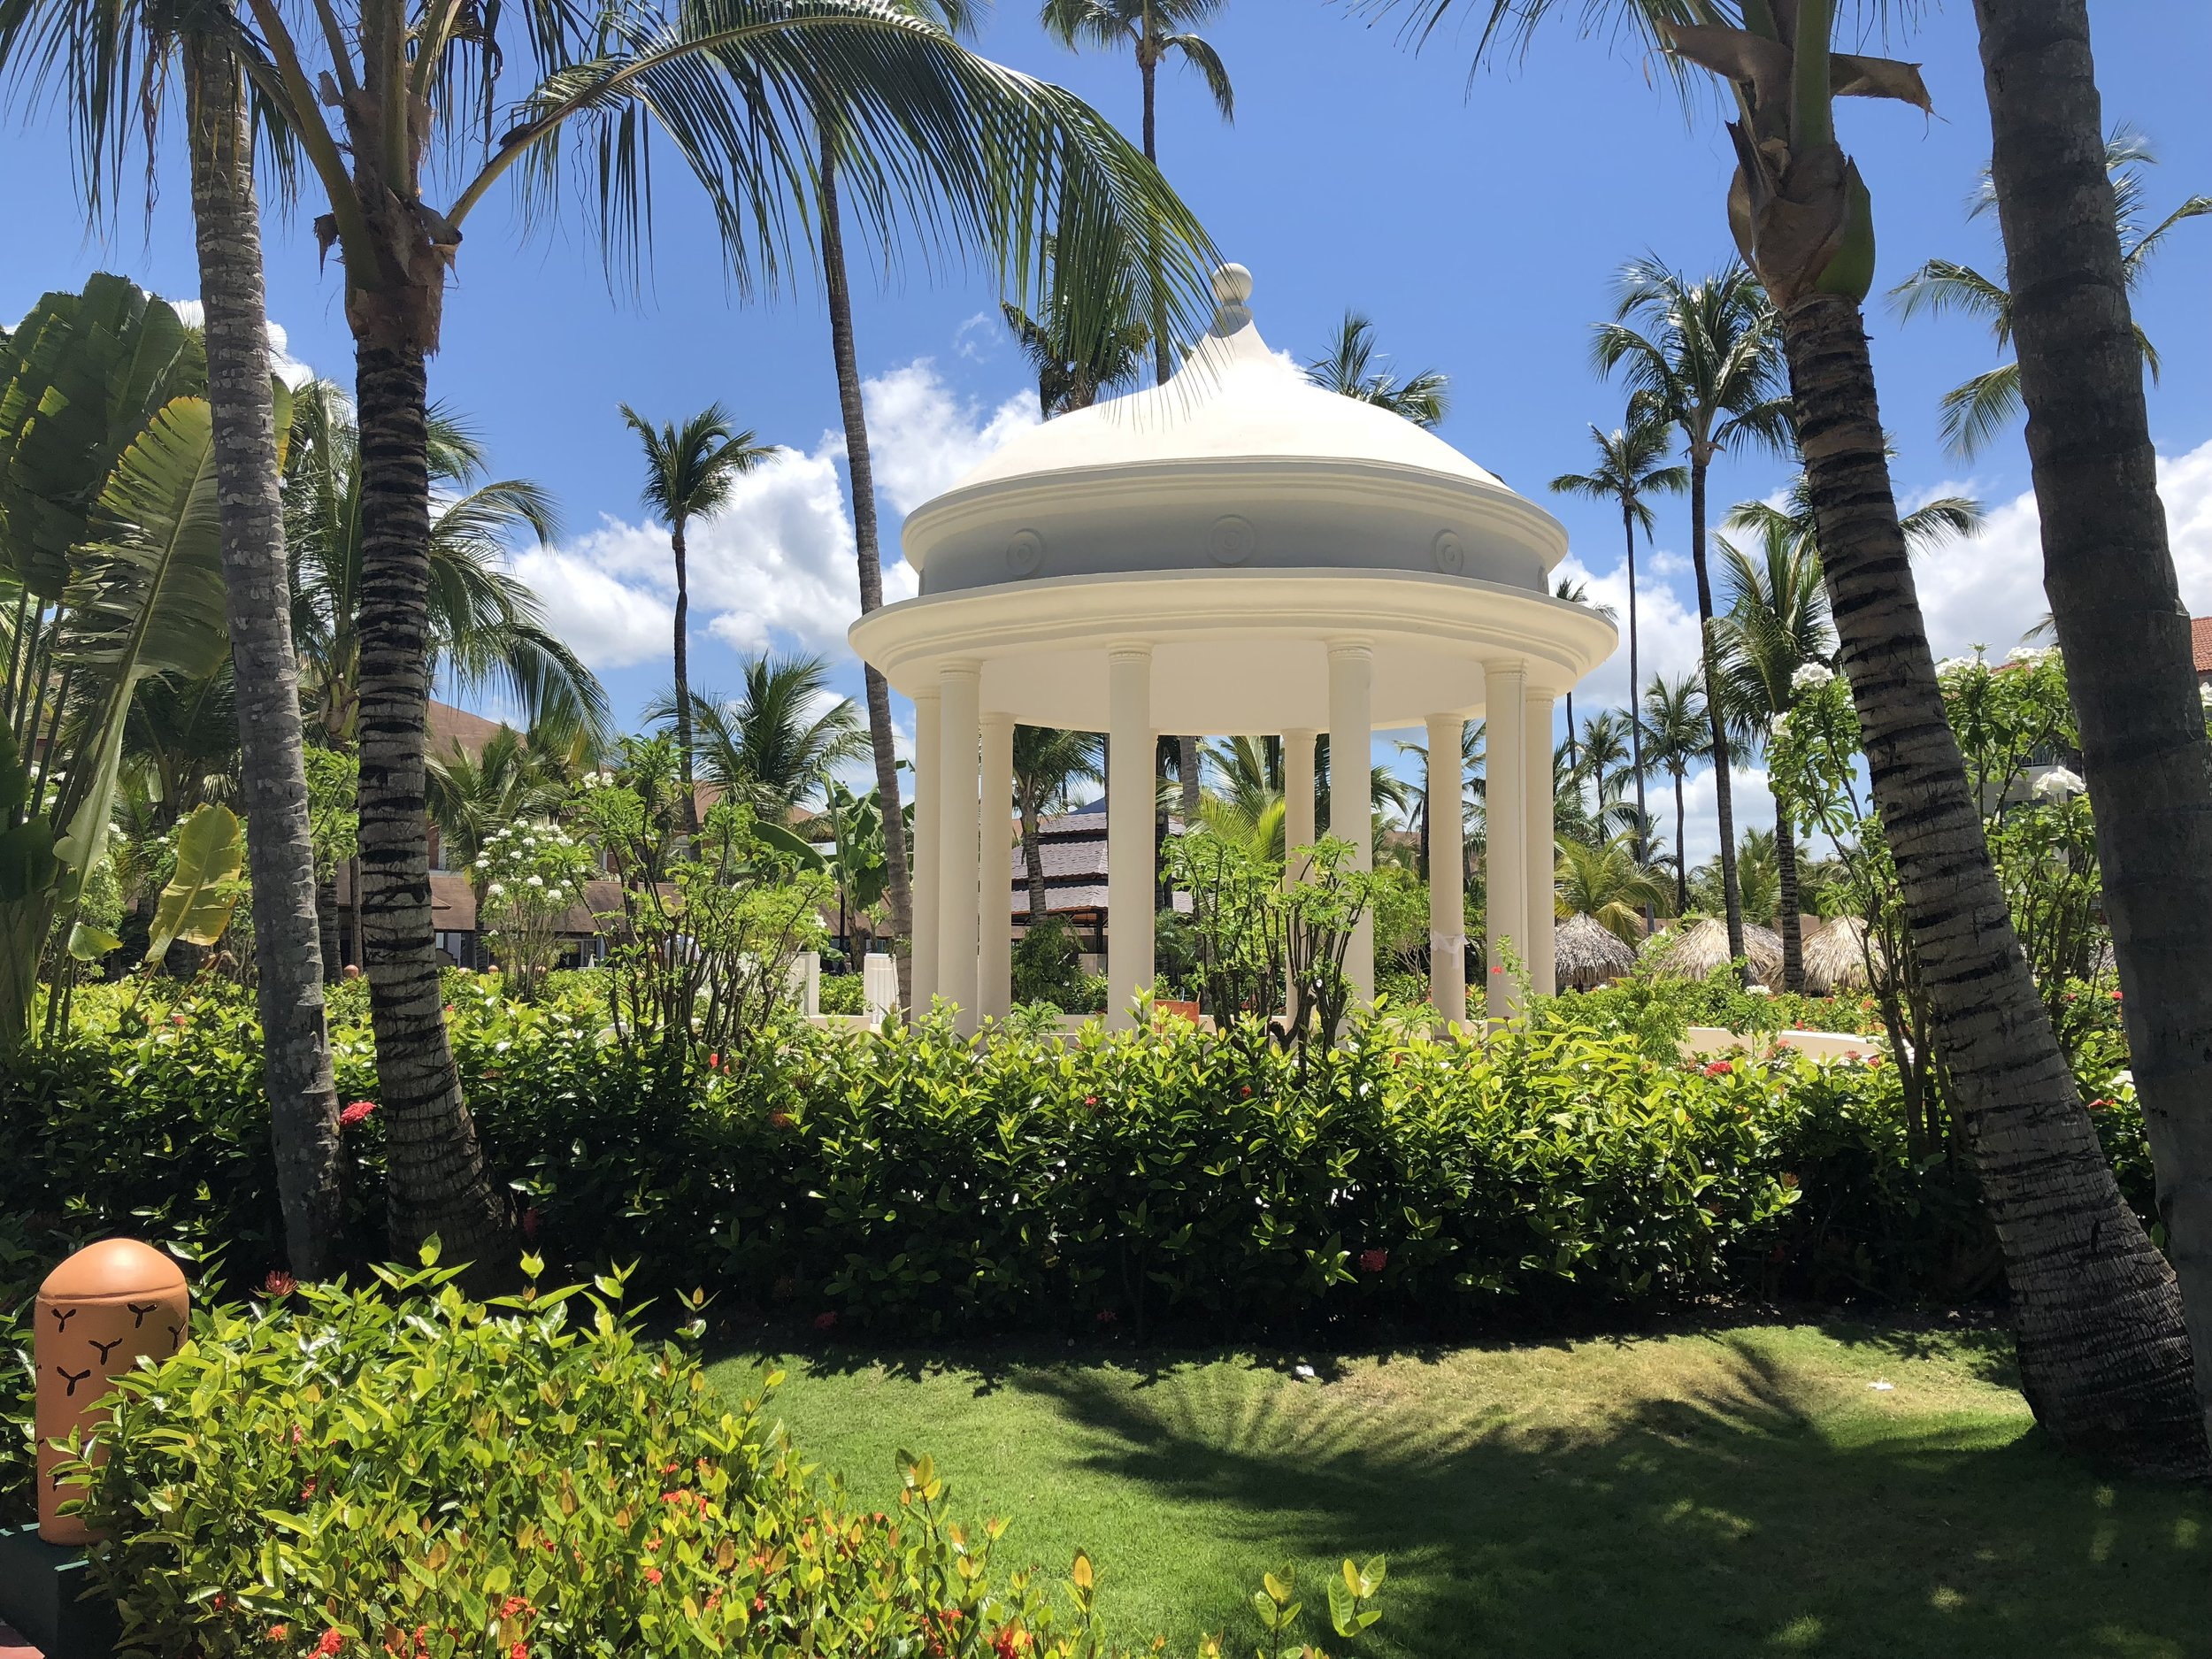 There are two gazebos on the property; one in the garden and one on the beach.